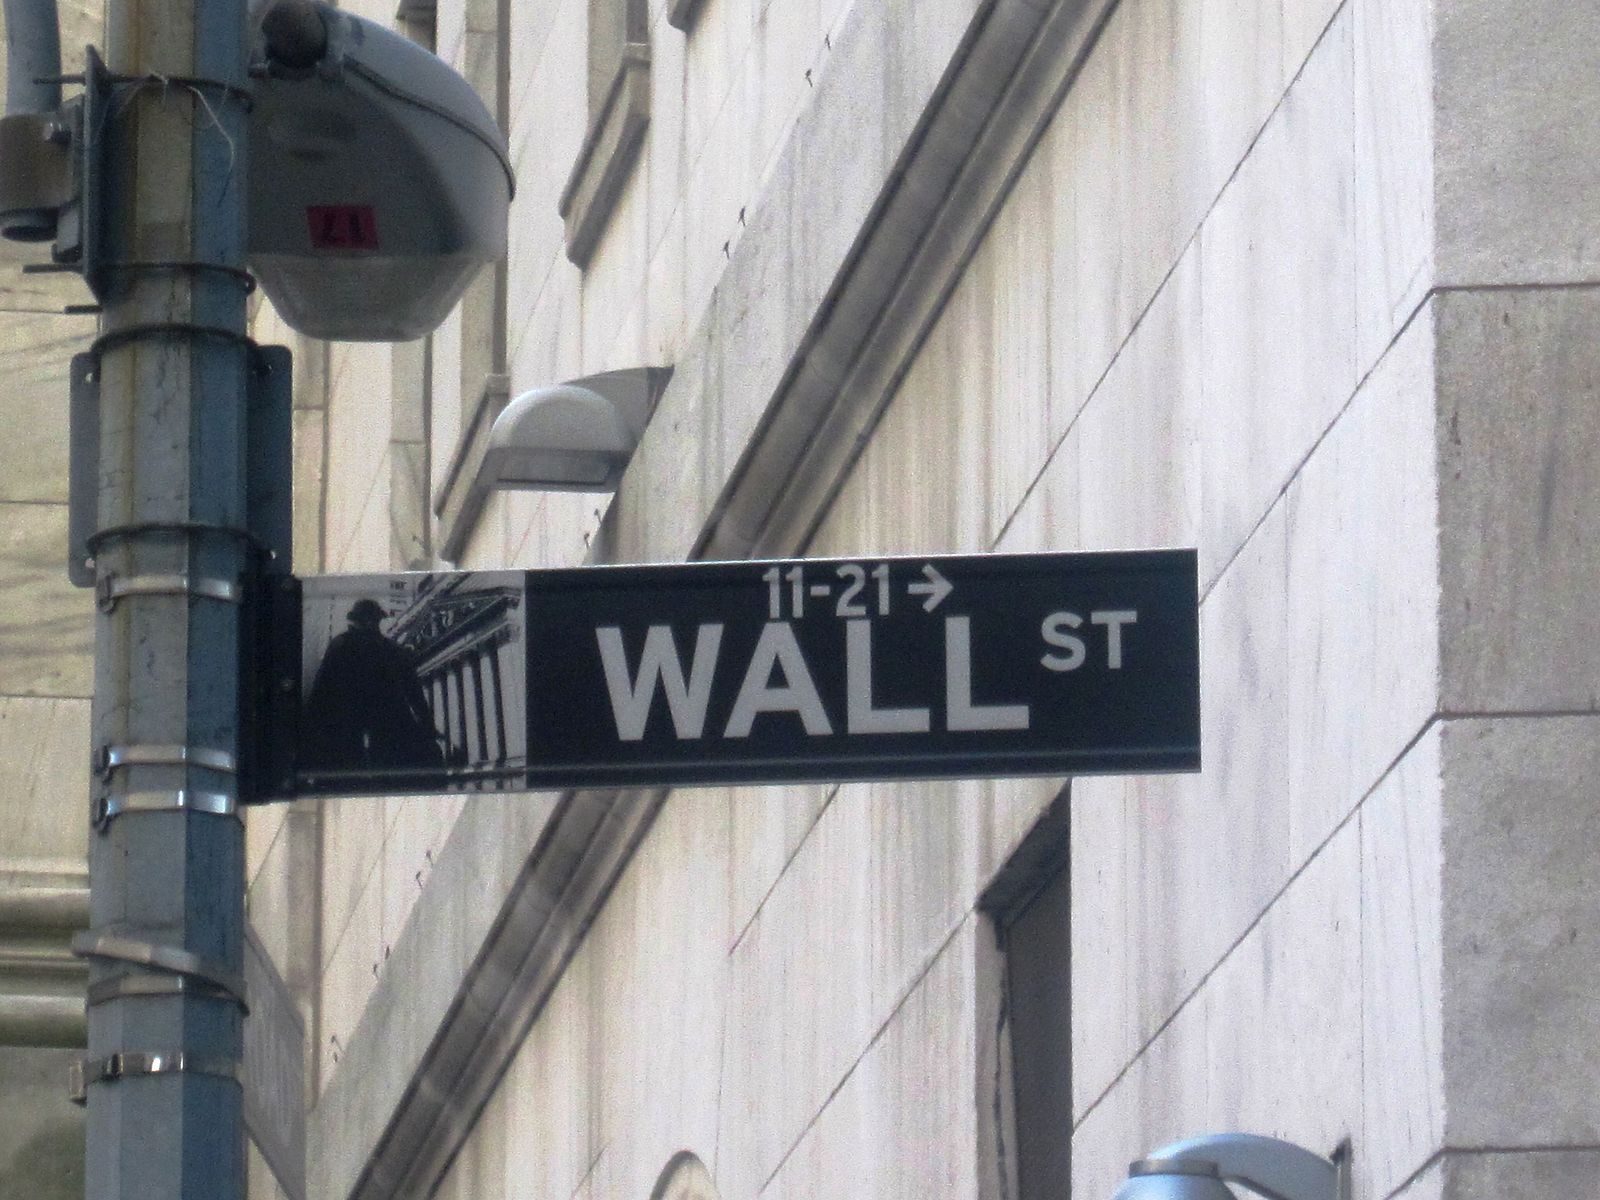 Difference Between Silicon Valley and Wall Street